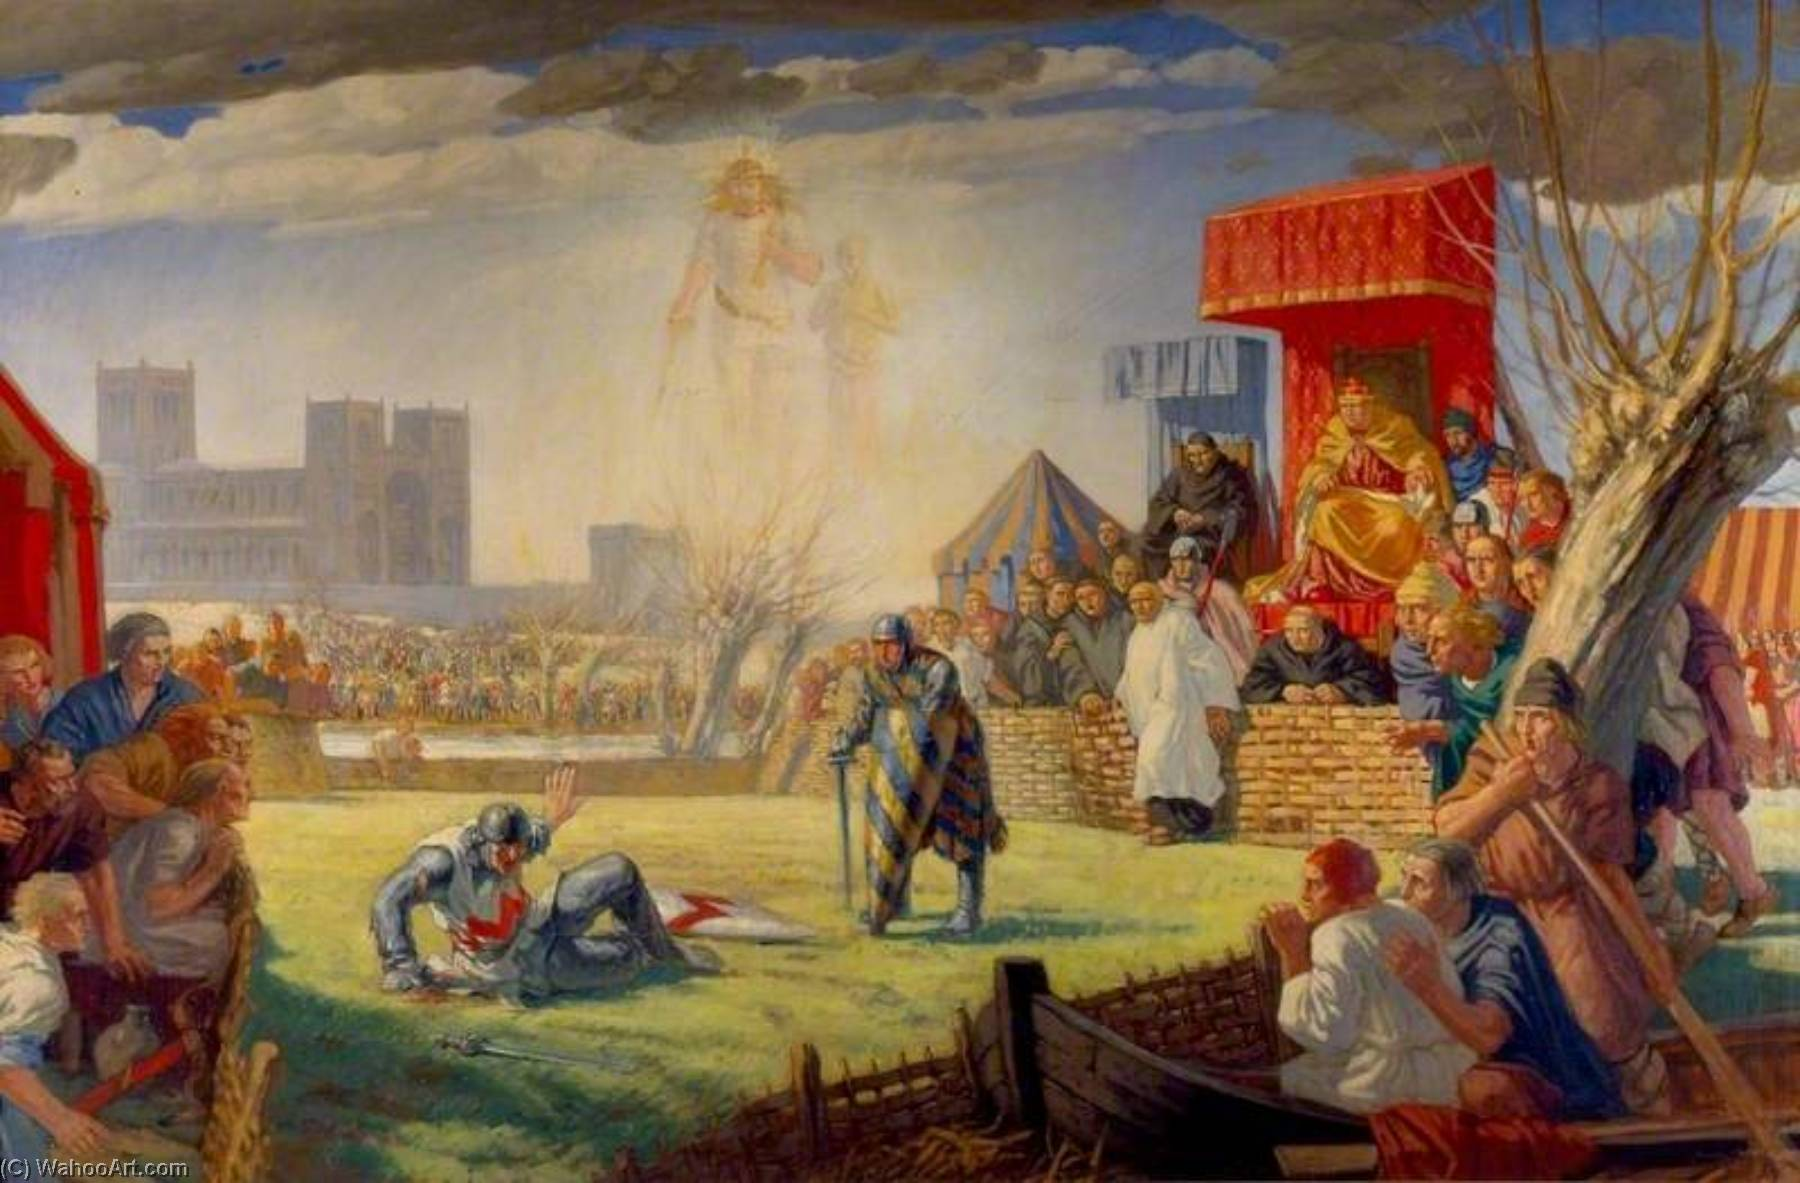 The Trial by Combat of Henry de Essex and Robert de Montfort at Reading, 8 April 1163, Oil On Canvas by Harry Morley (1881-1943)